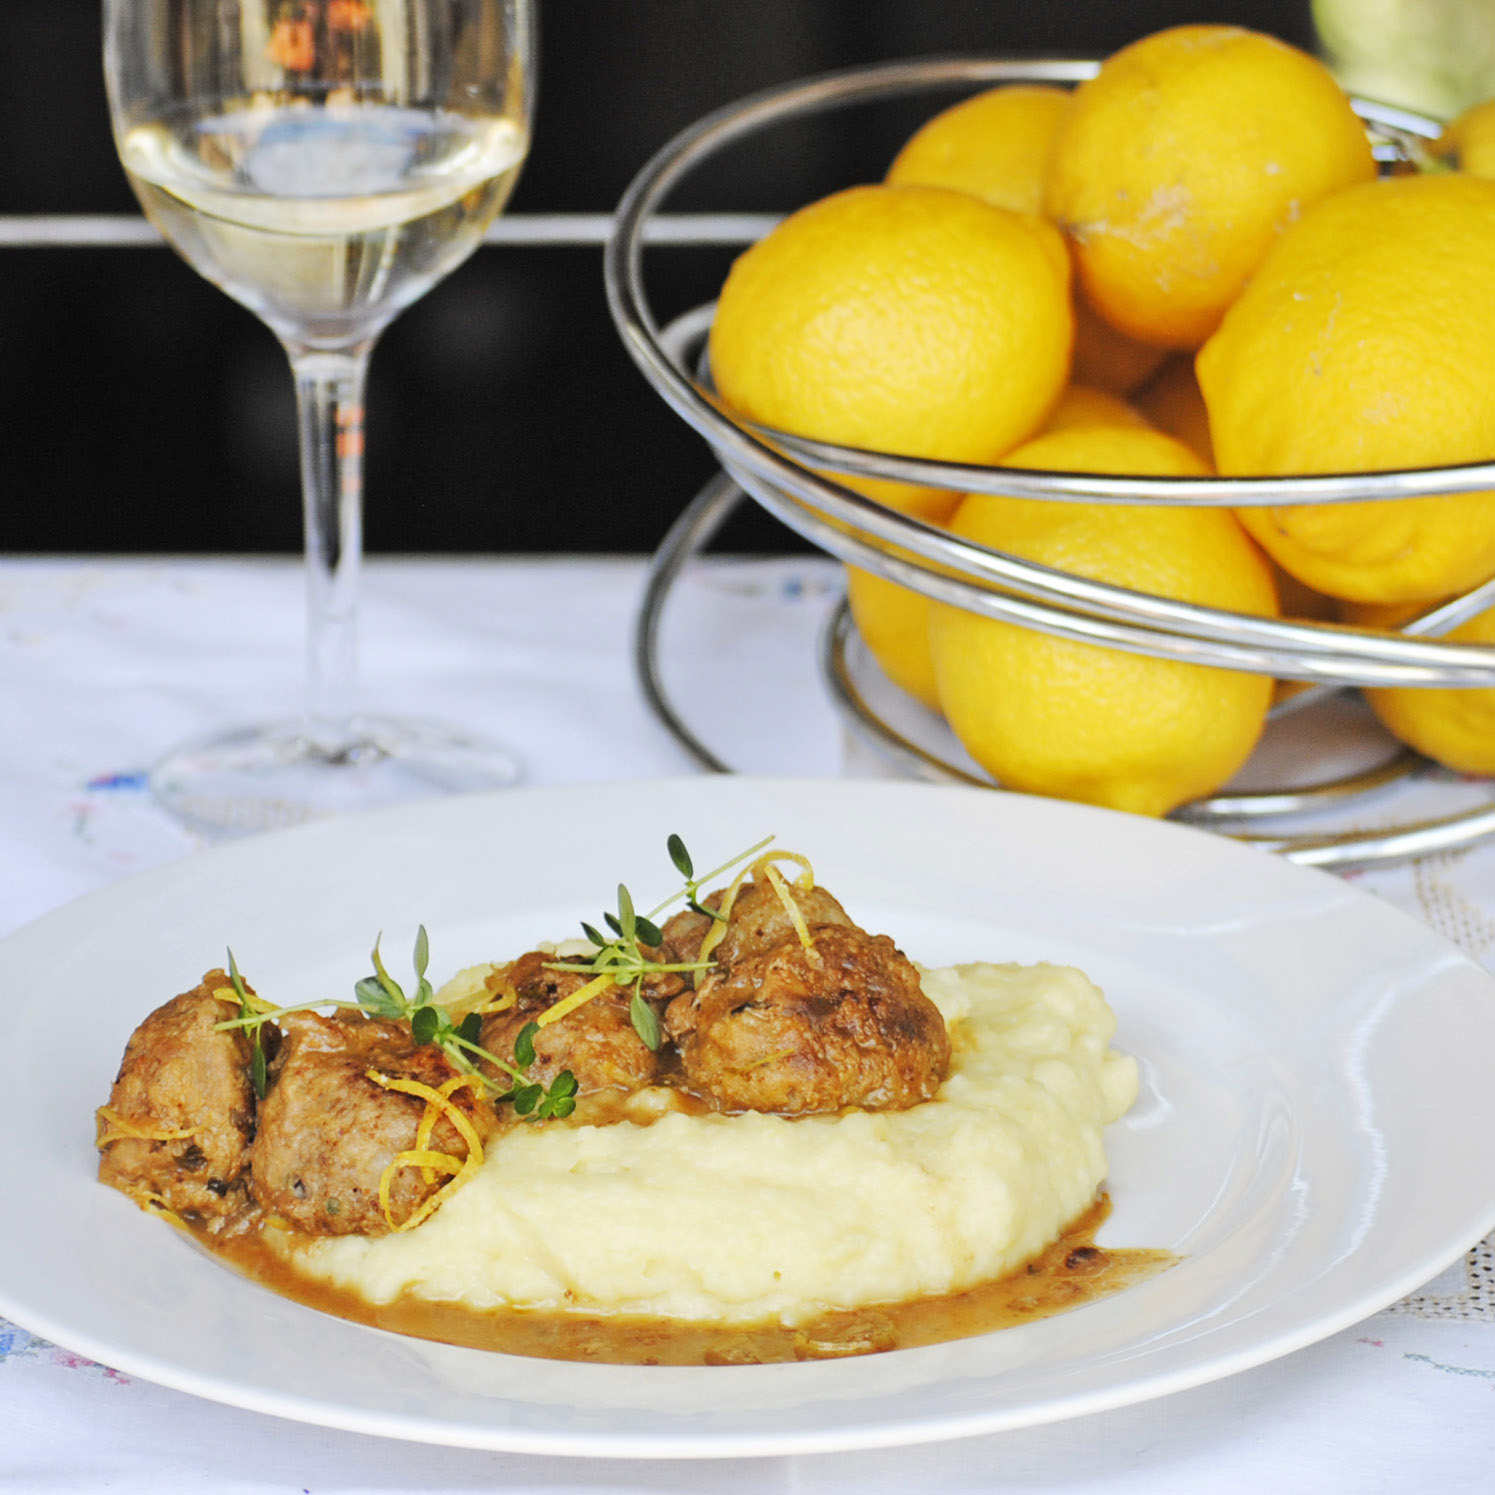 Pork meatballs with lemon and thyme